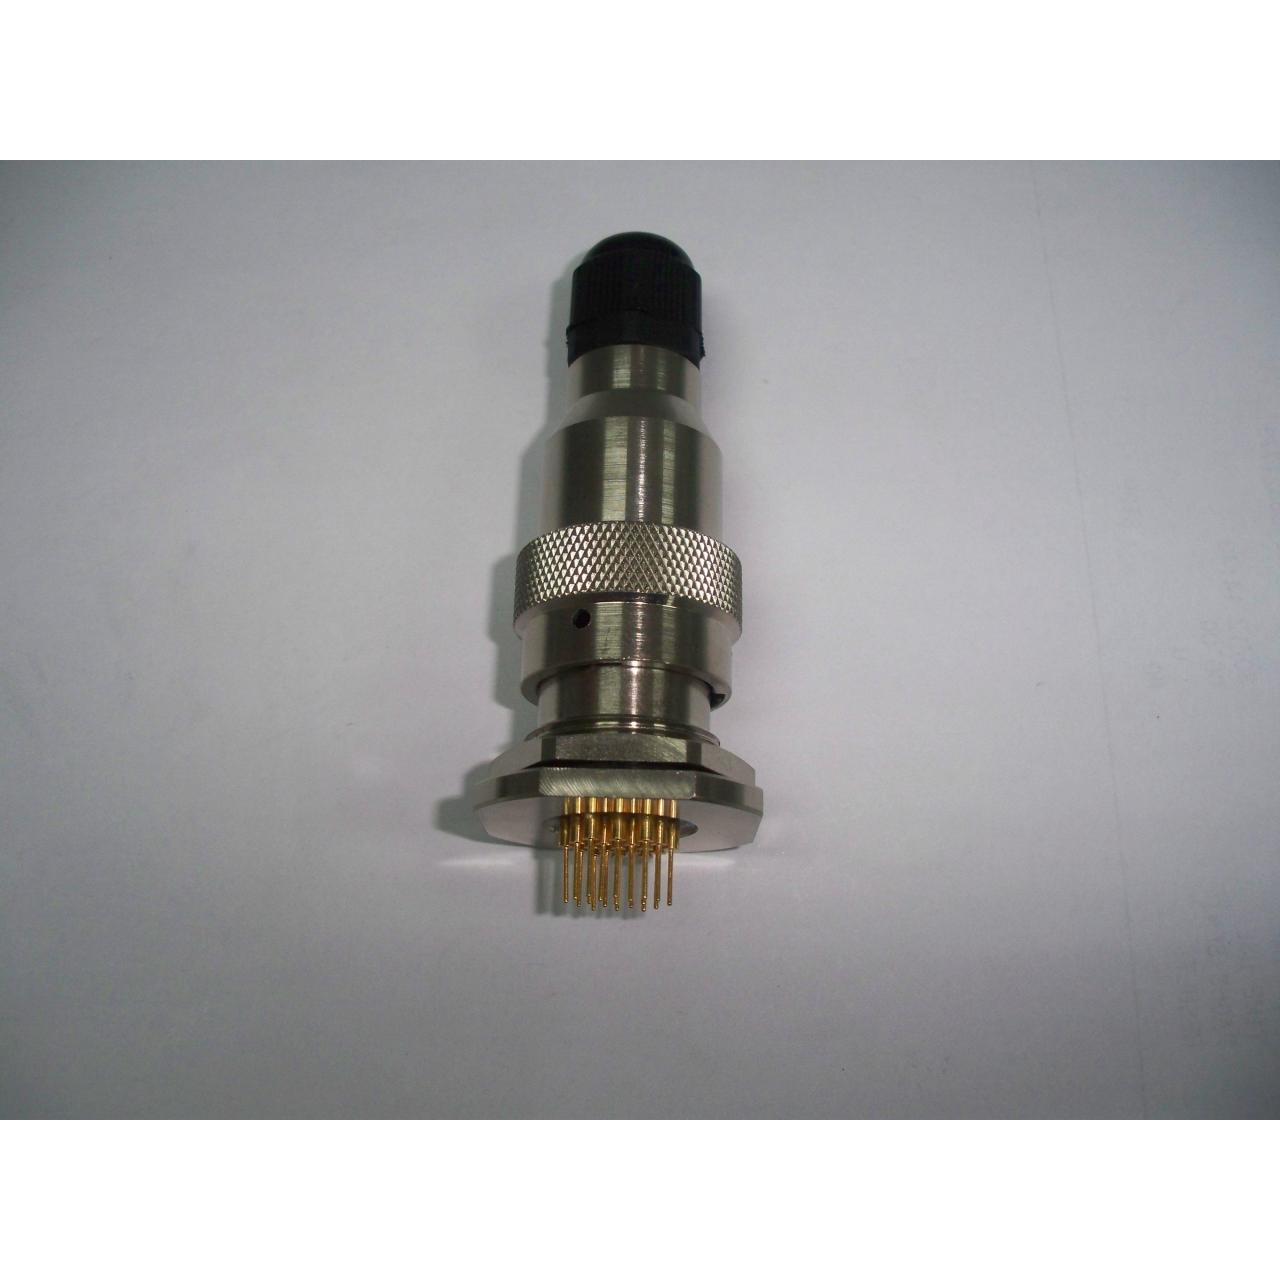 Quality instrument connector for sale